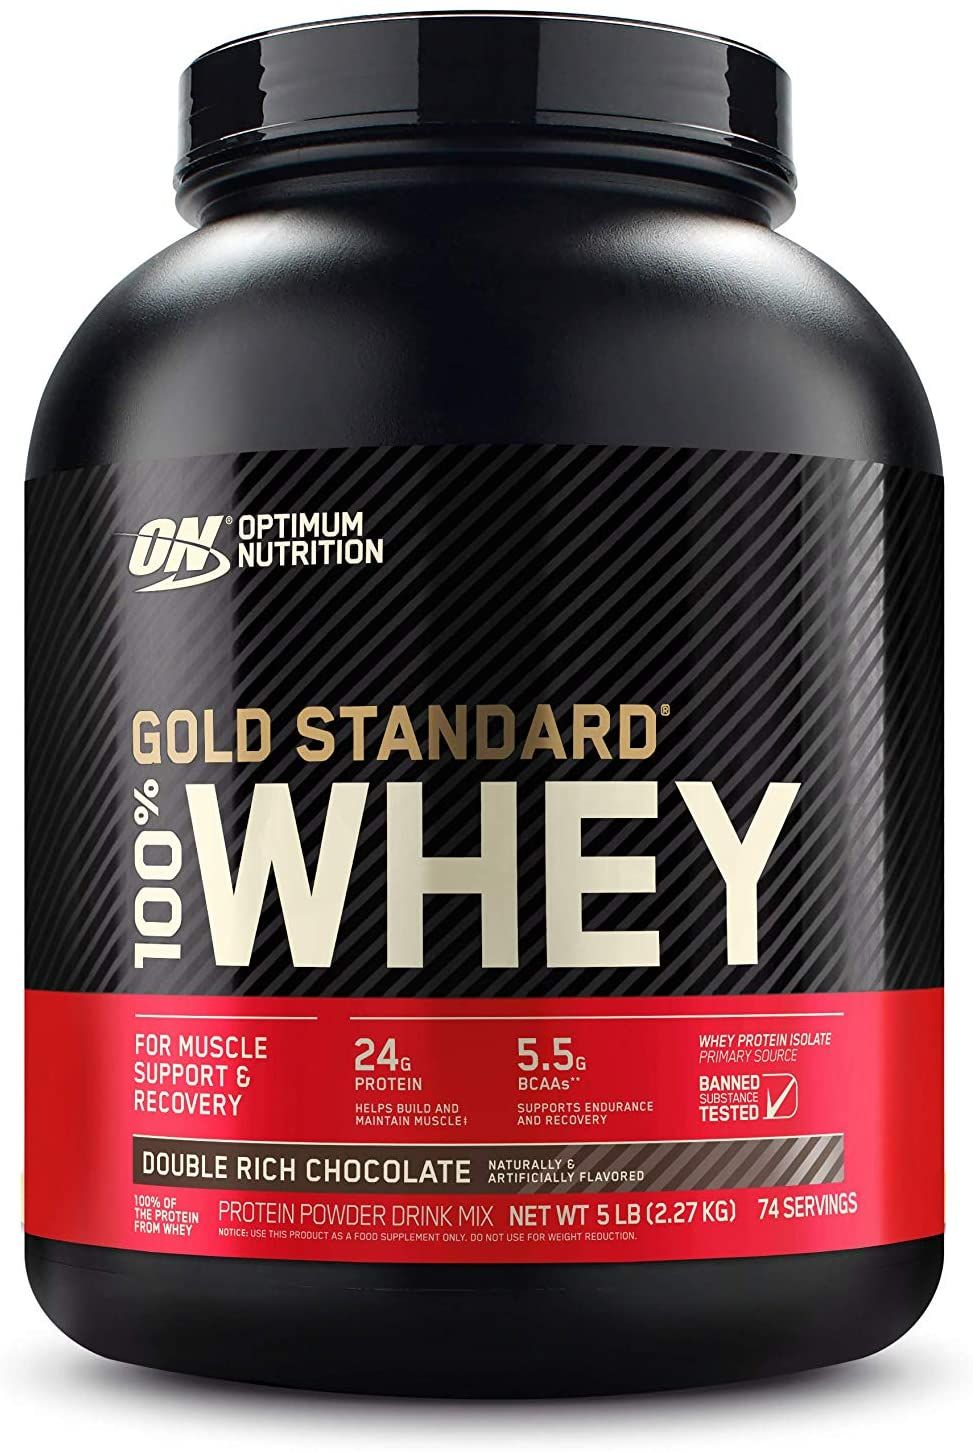 Whey Protein Powder In 2020 Optimum Nutrition Gold Standard Best Whey Protein Optimum Nutrition